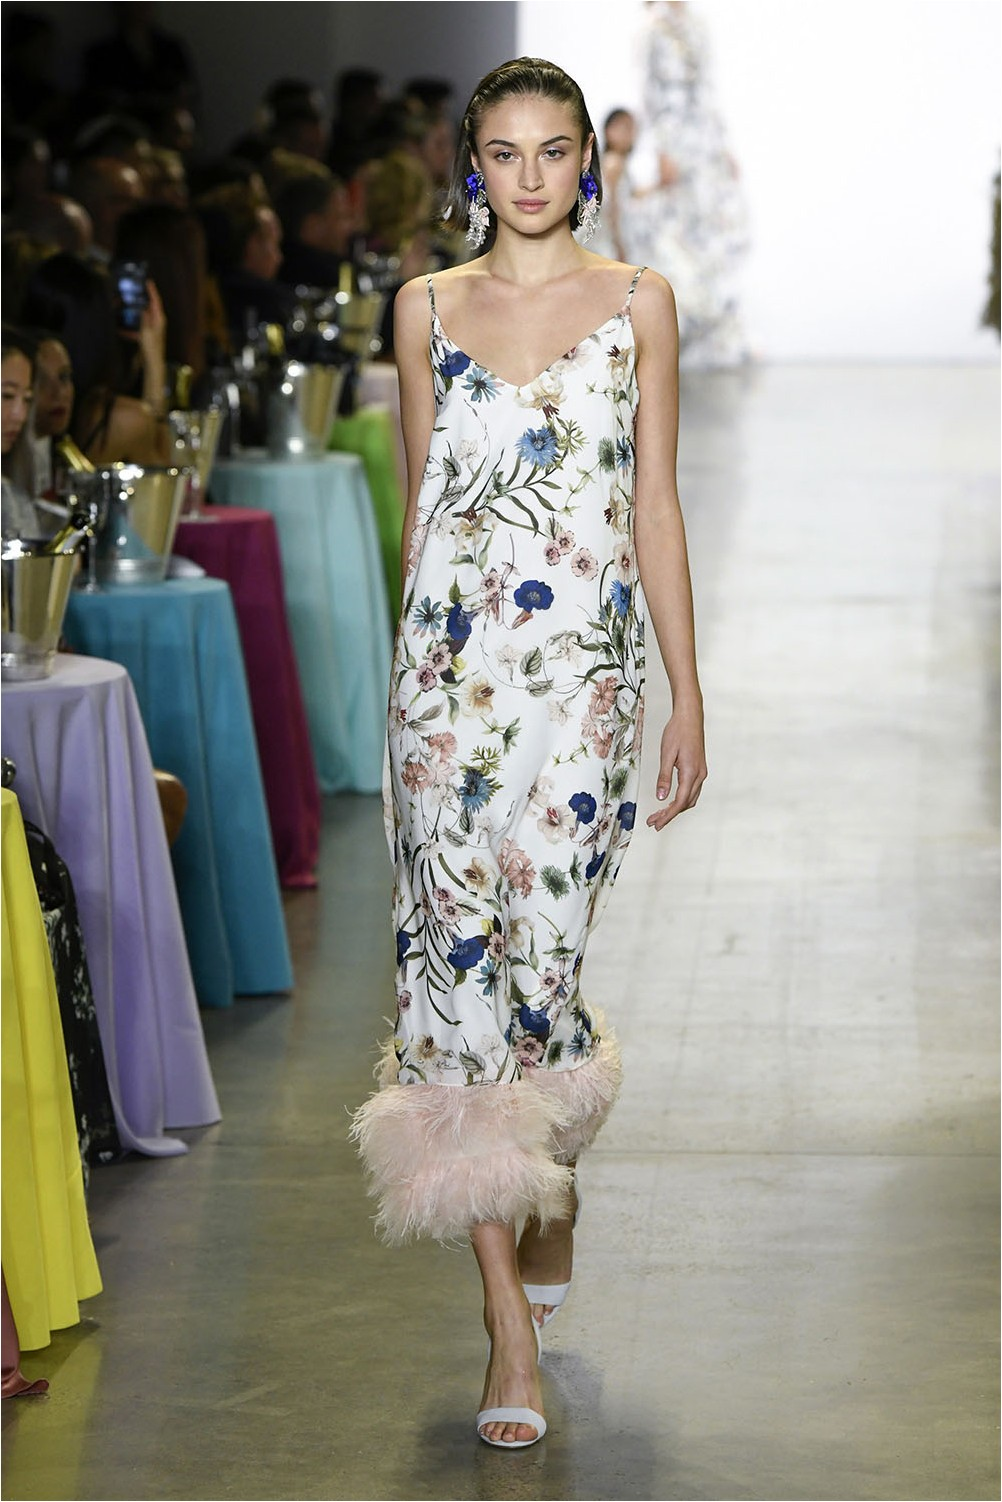 Downg and feathers Badgley Mischka